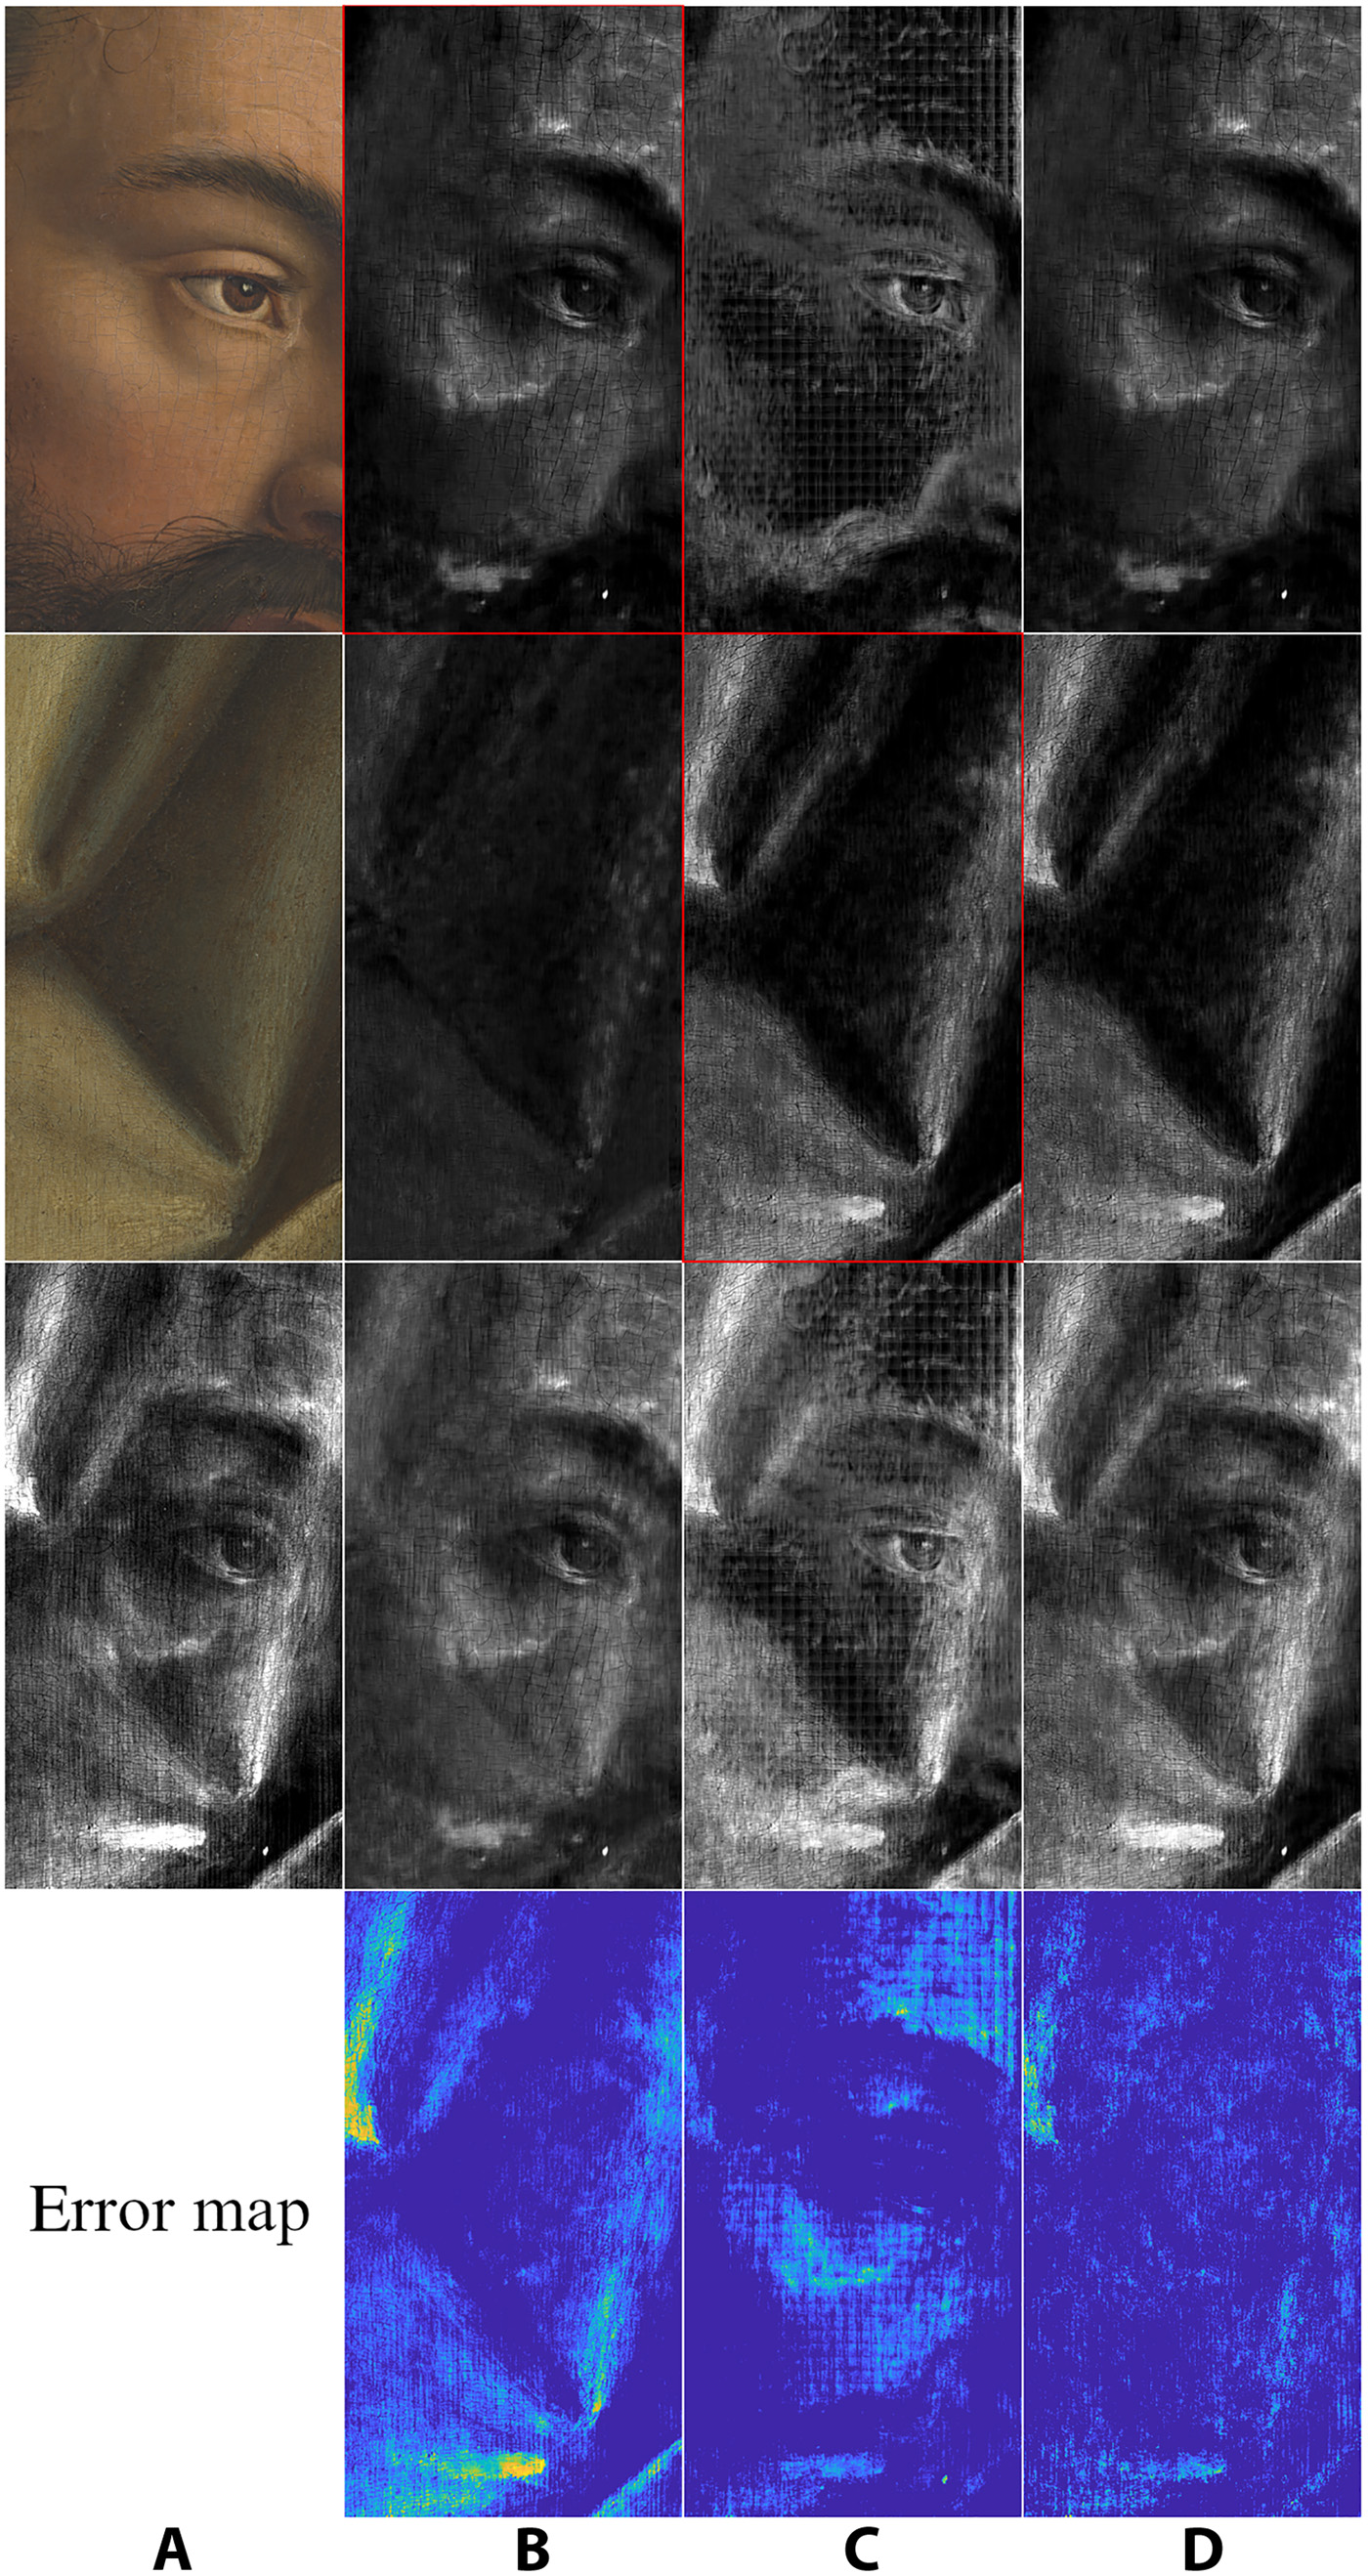 The algorithm interpreting the x-rays of a detail of Adam on the Ghent Altarpiece. The first two rows show the unmixed x-rays separating the two sides, while the third row shows the original x-ray of the full panel.